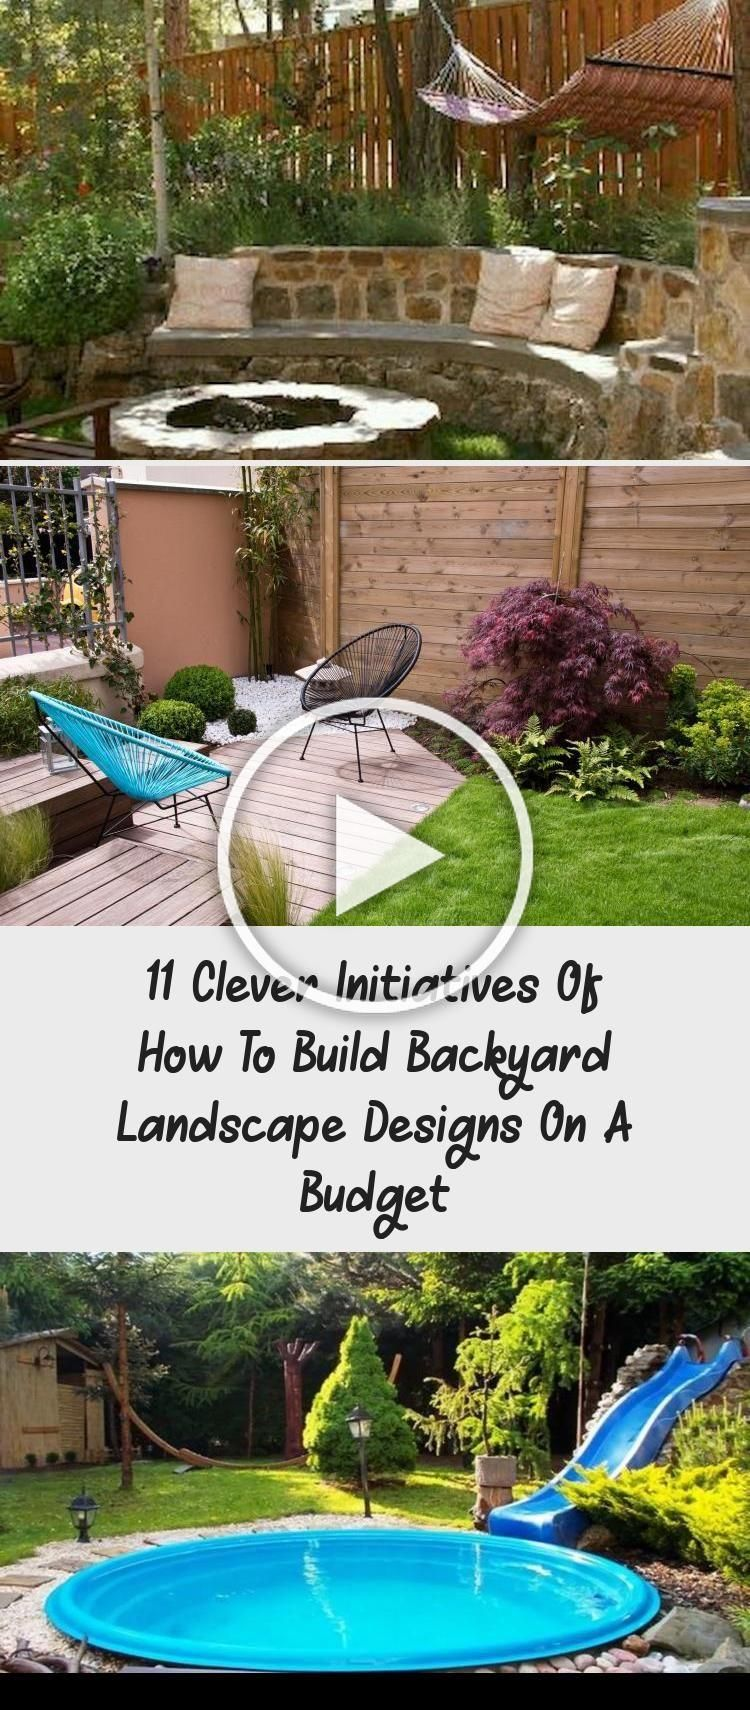 11 Clever Initiatives of How to Build Backyard Landscape Designs On A Budget #Homedecorlove #landscapedesignsPlans #landscapedesignsWithRocks #landscapedesignsTattoo #Waterfrontlandscapedesigns #Smalllandscapedesigns